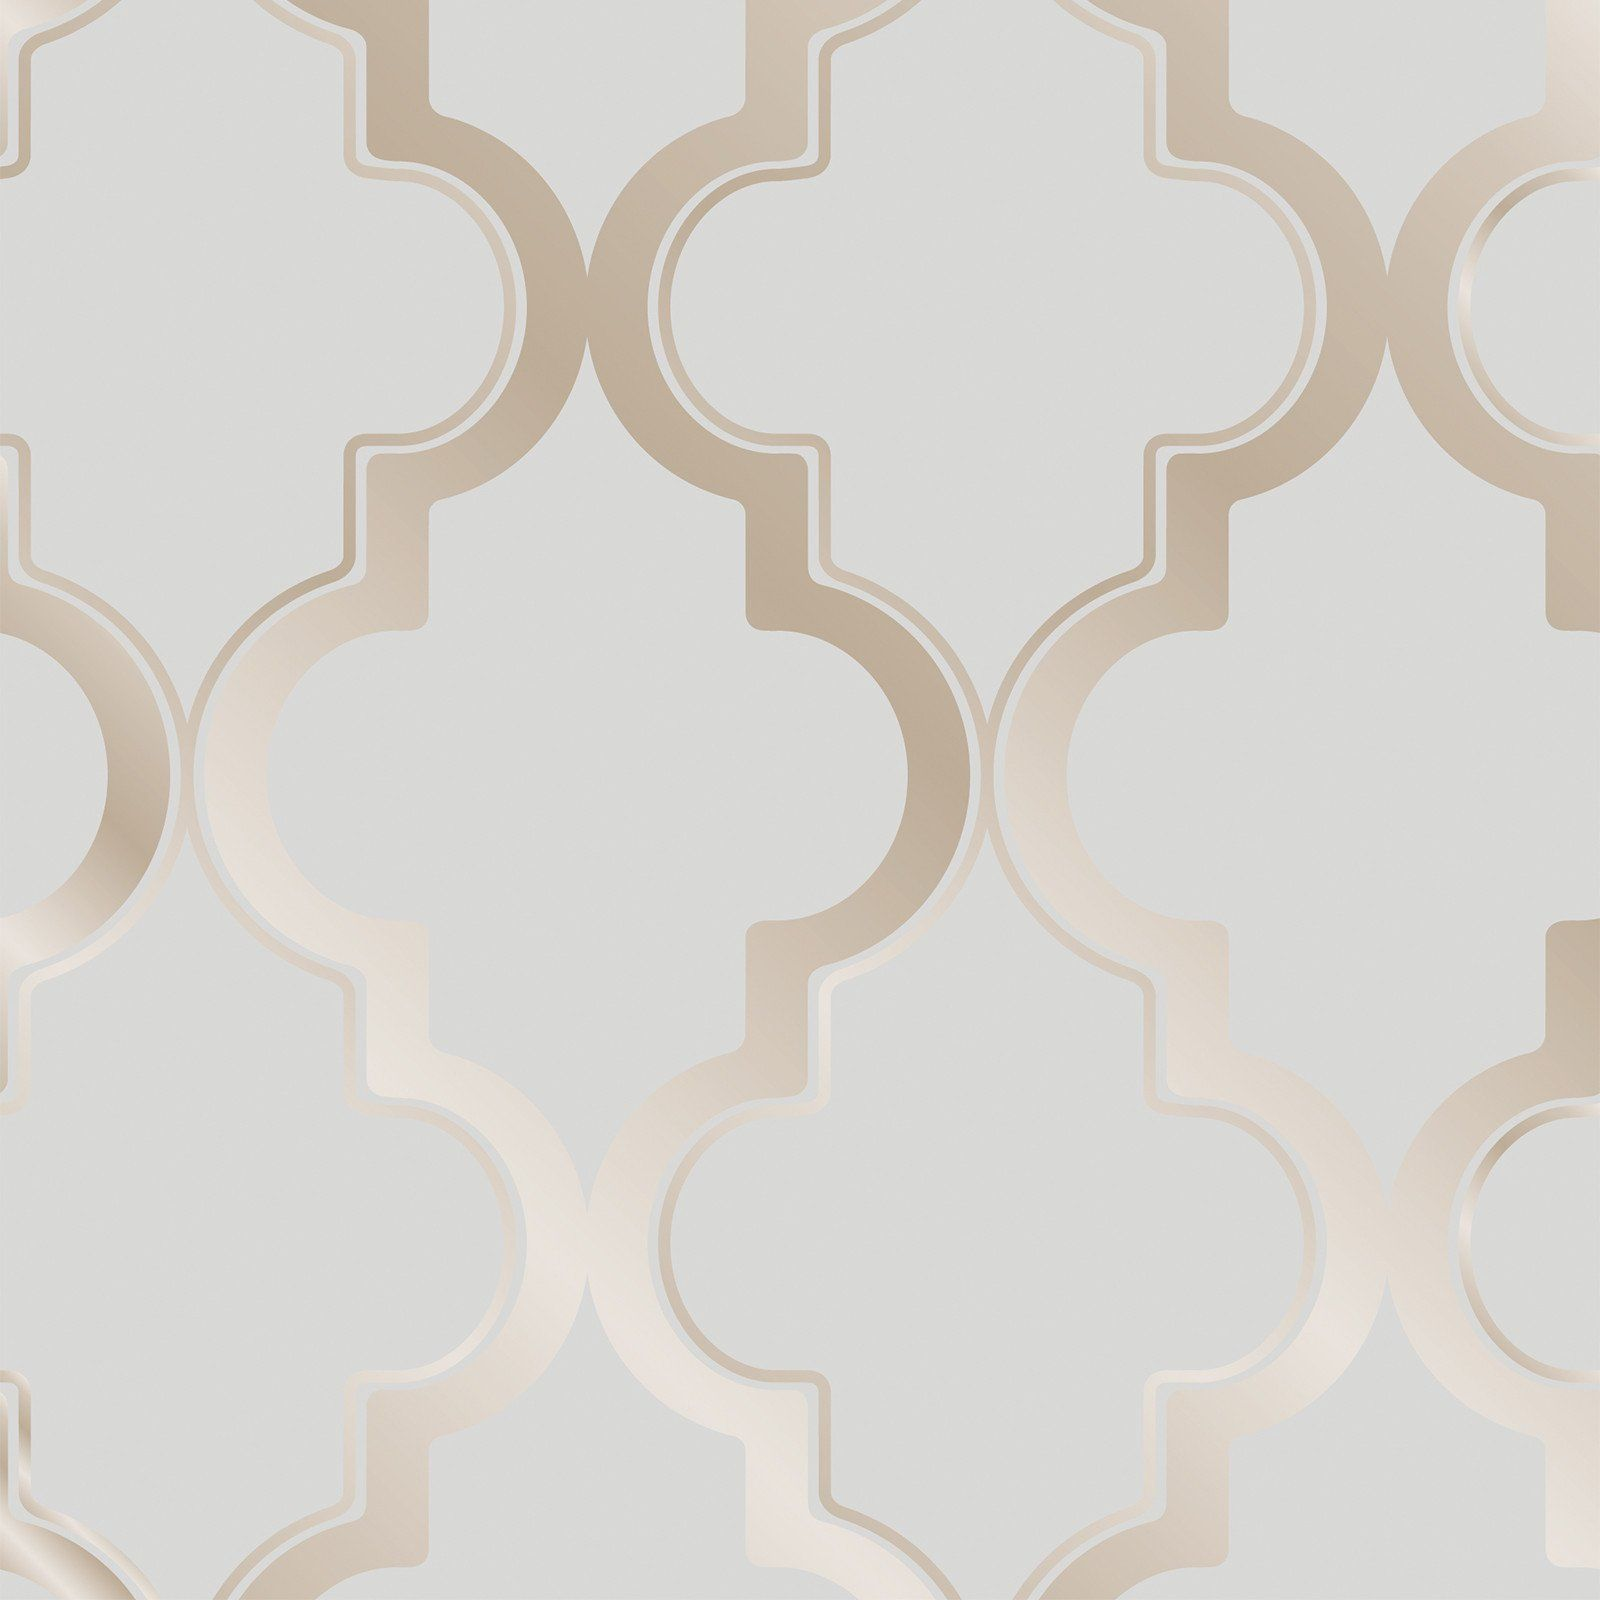 Self Adhesive Wall Paper marrakesh self adhesive wallpaper in bronze grey design